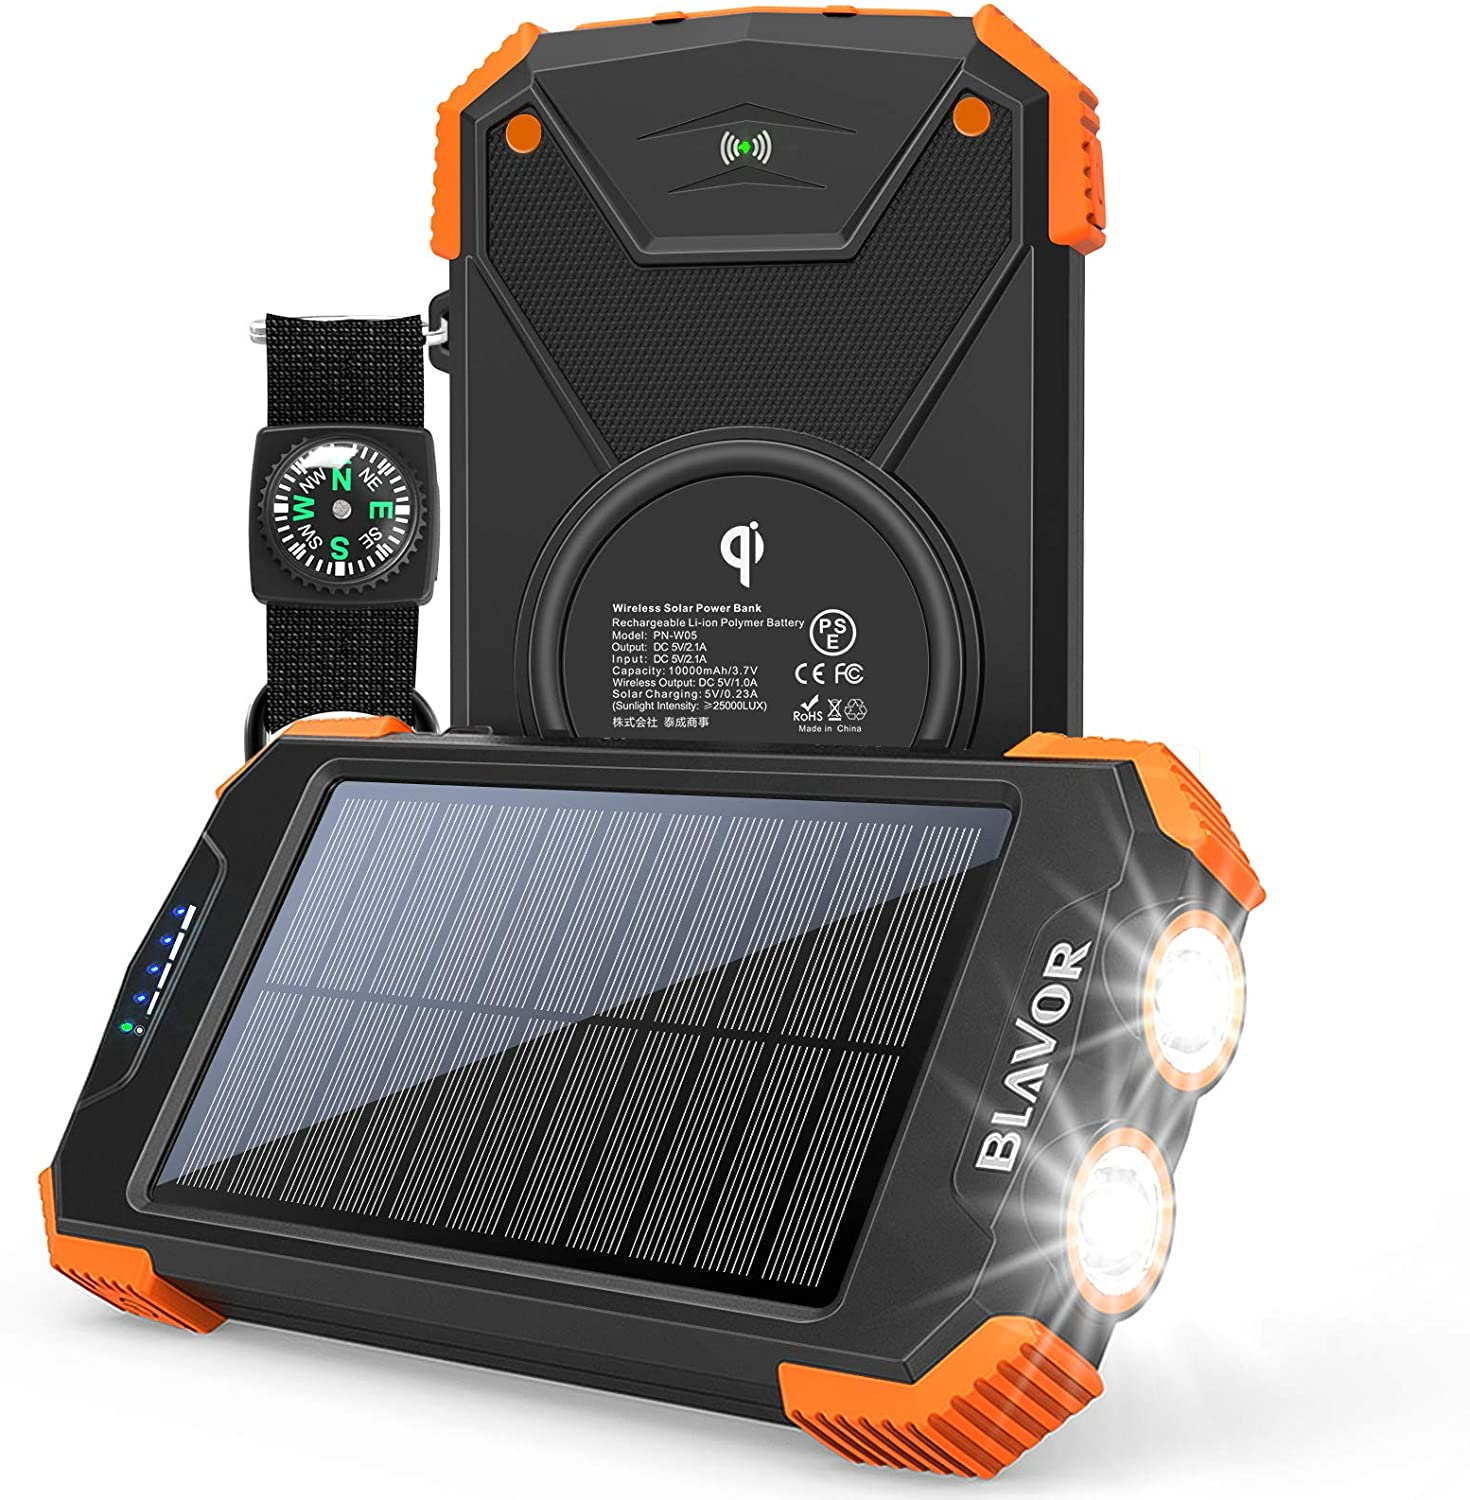 Black and orange solar power bank with torch function